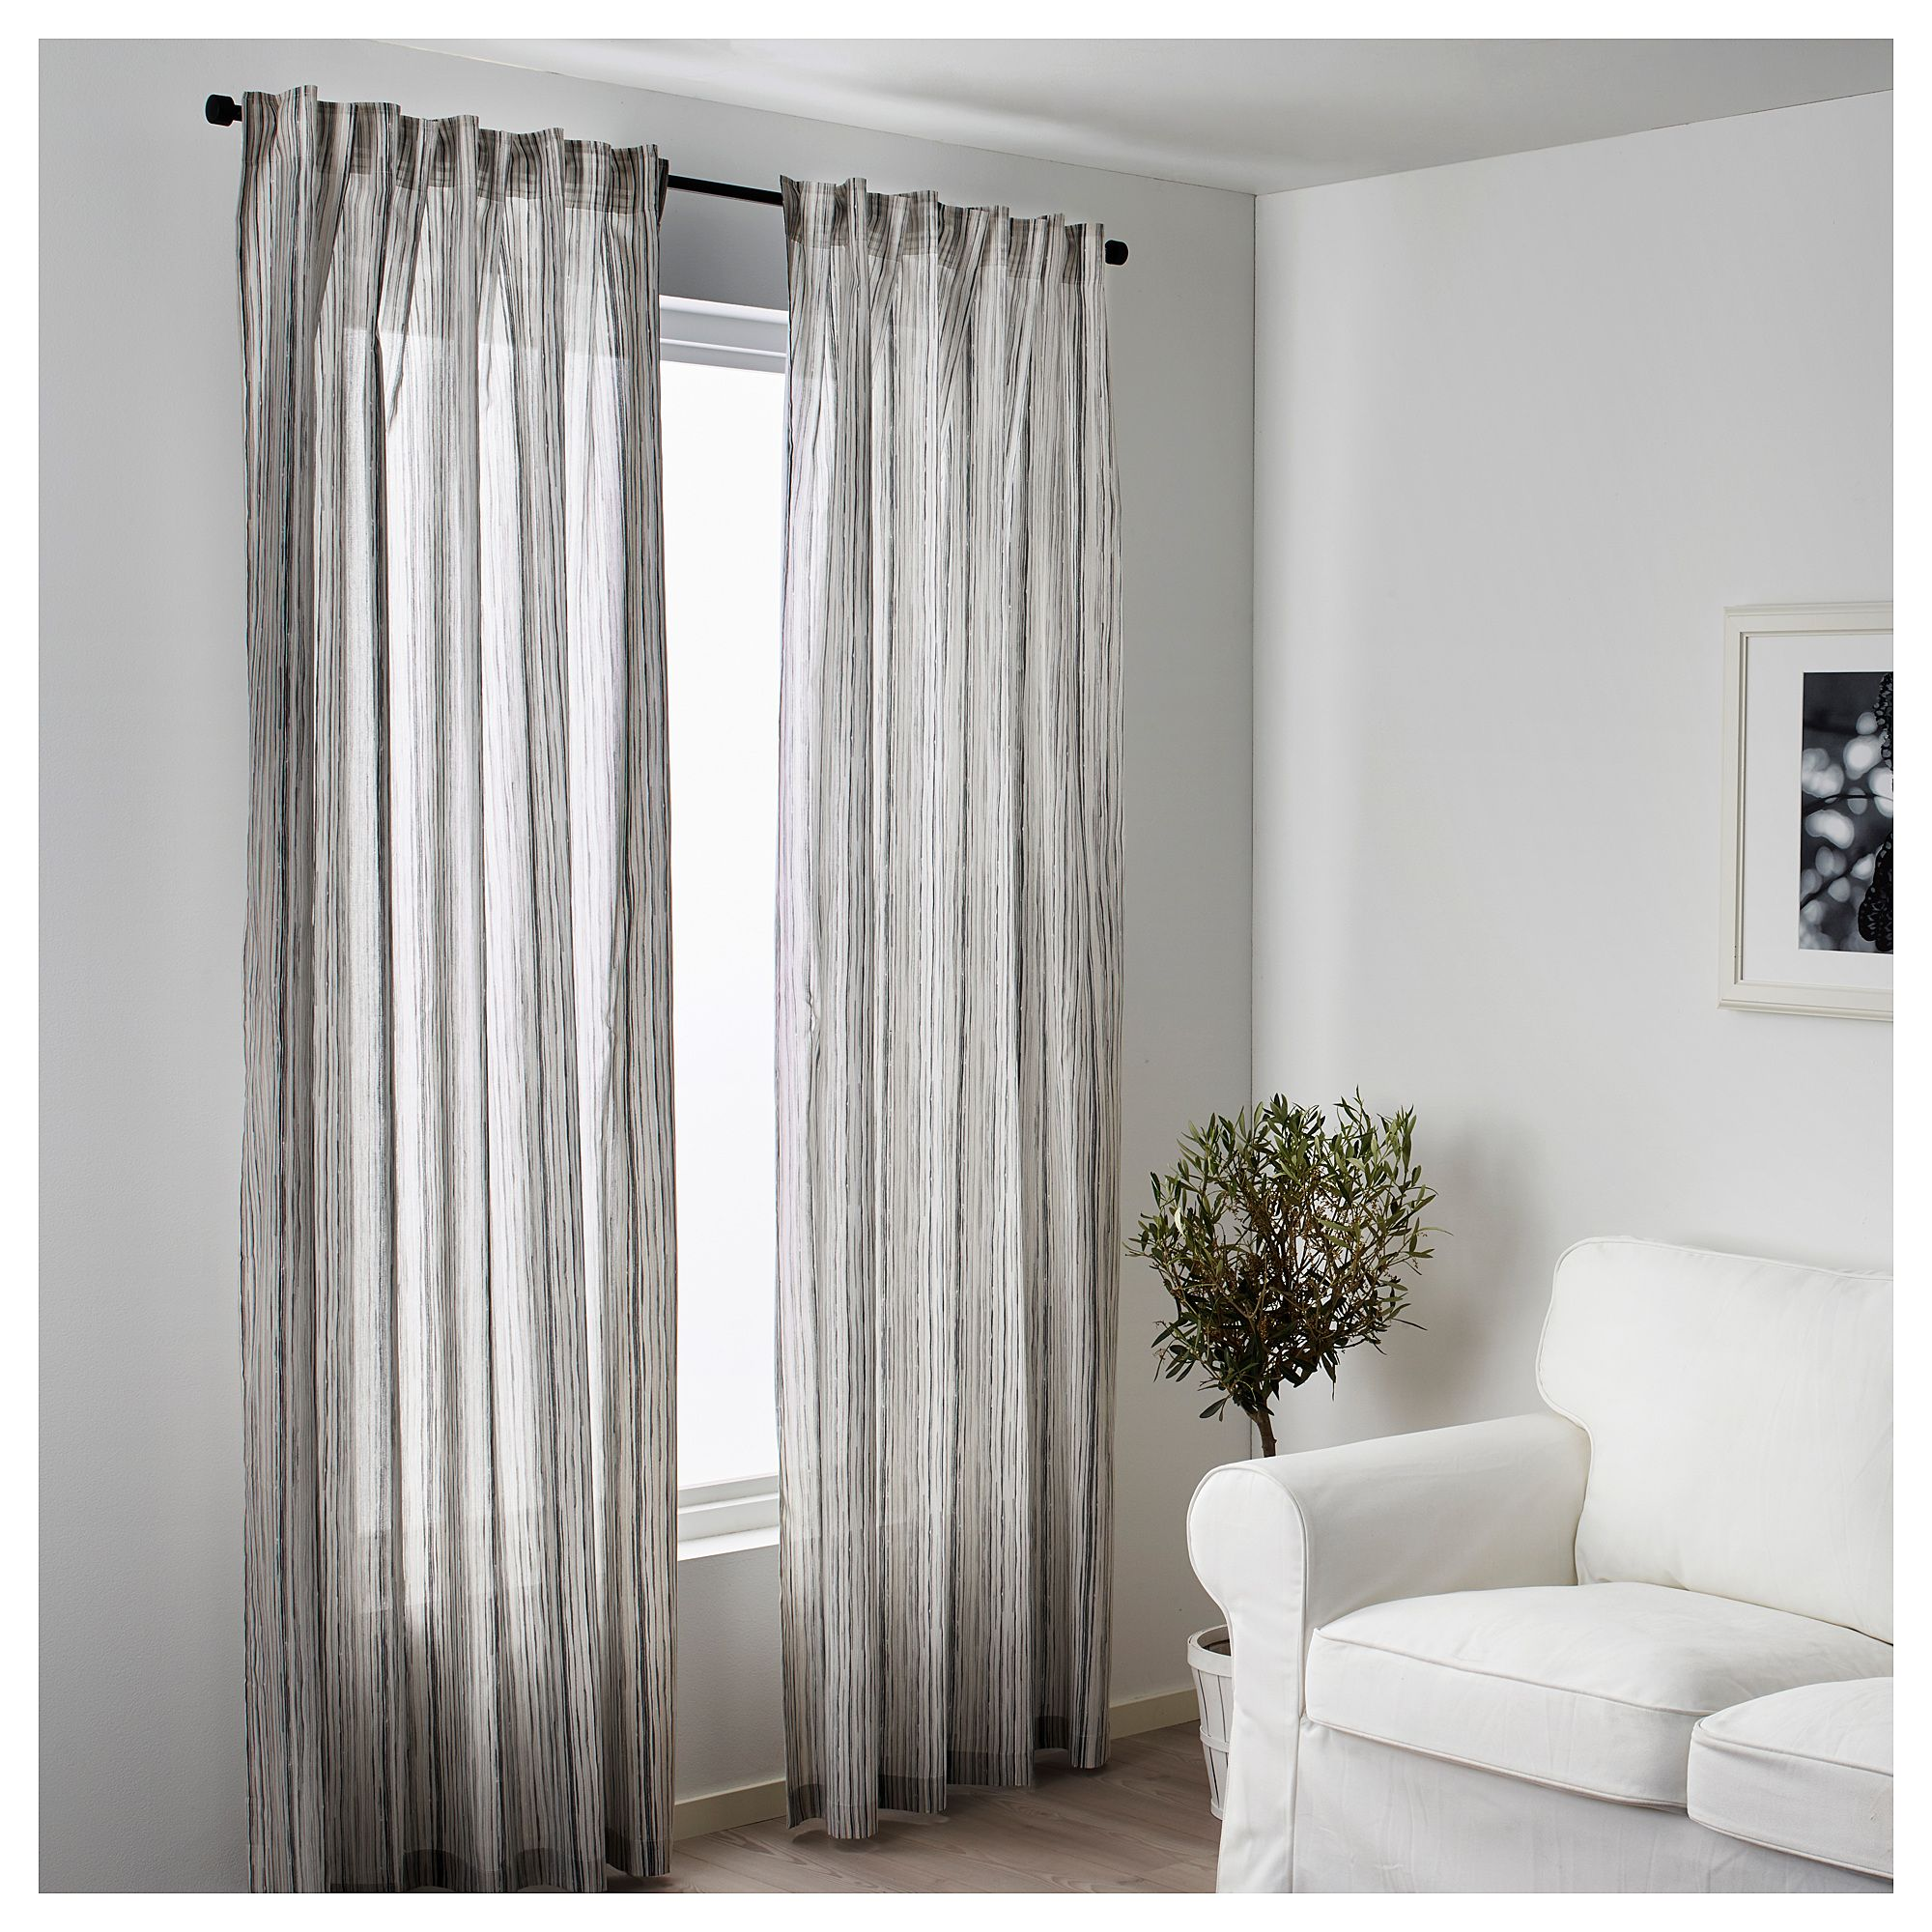 Ikea Dagrun Curtains 1 Pair The Curtains Let The Light